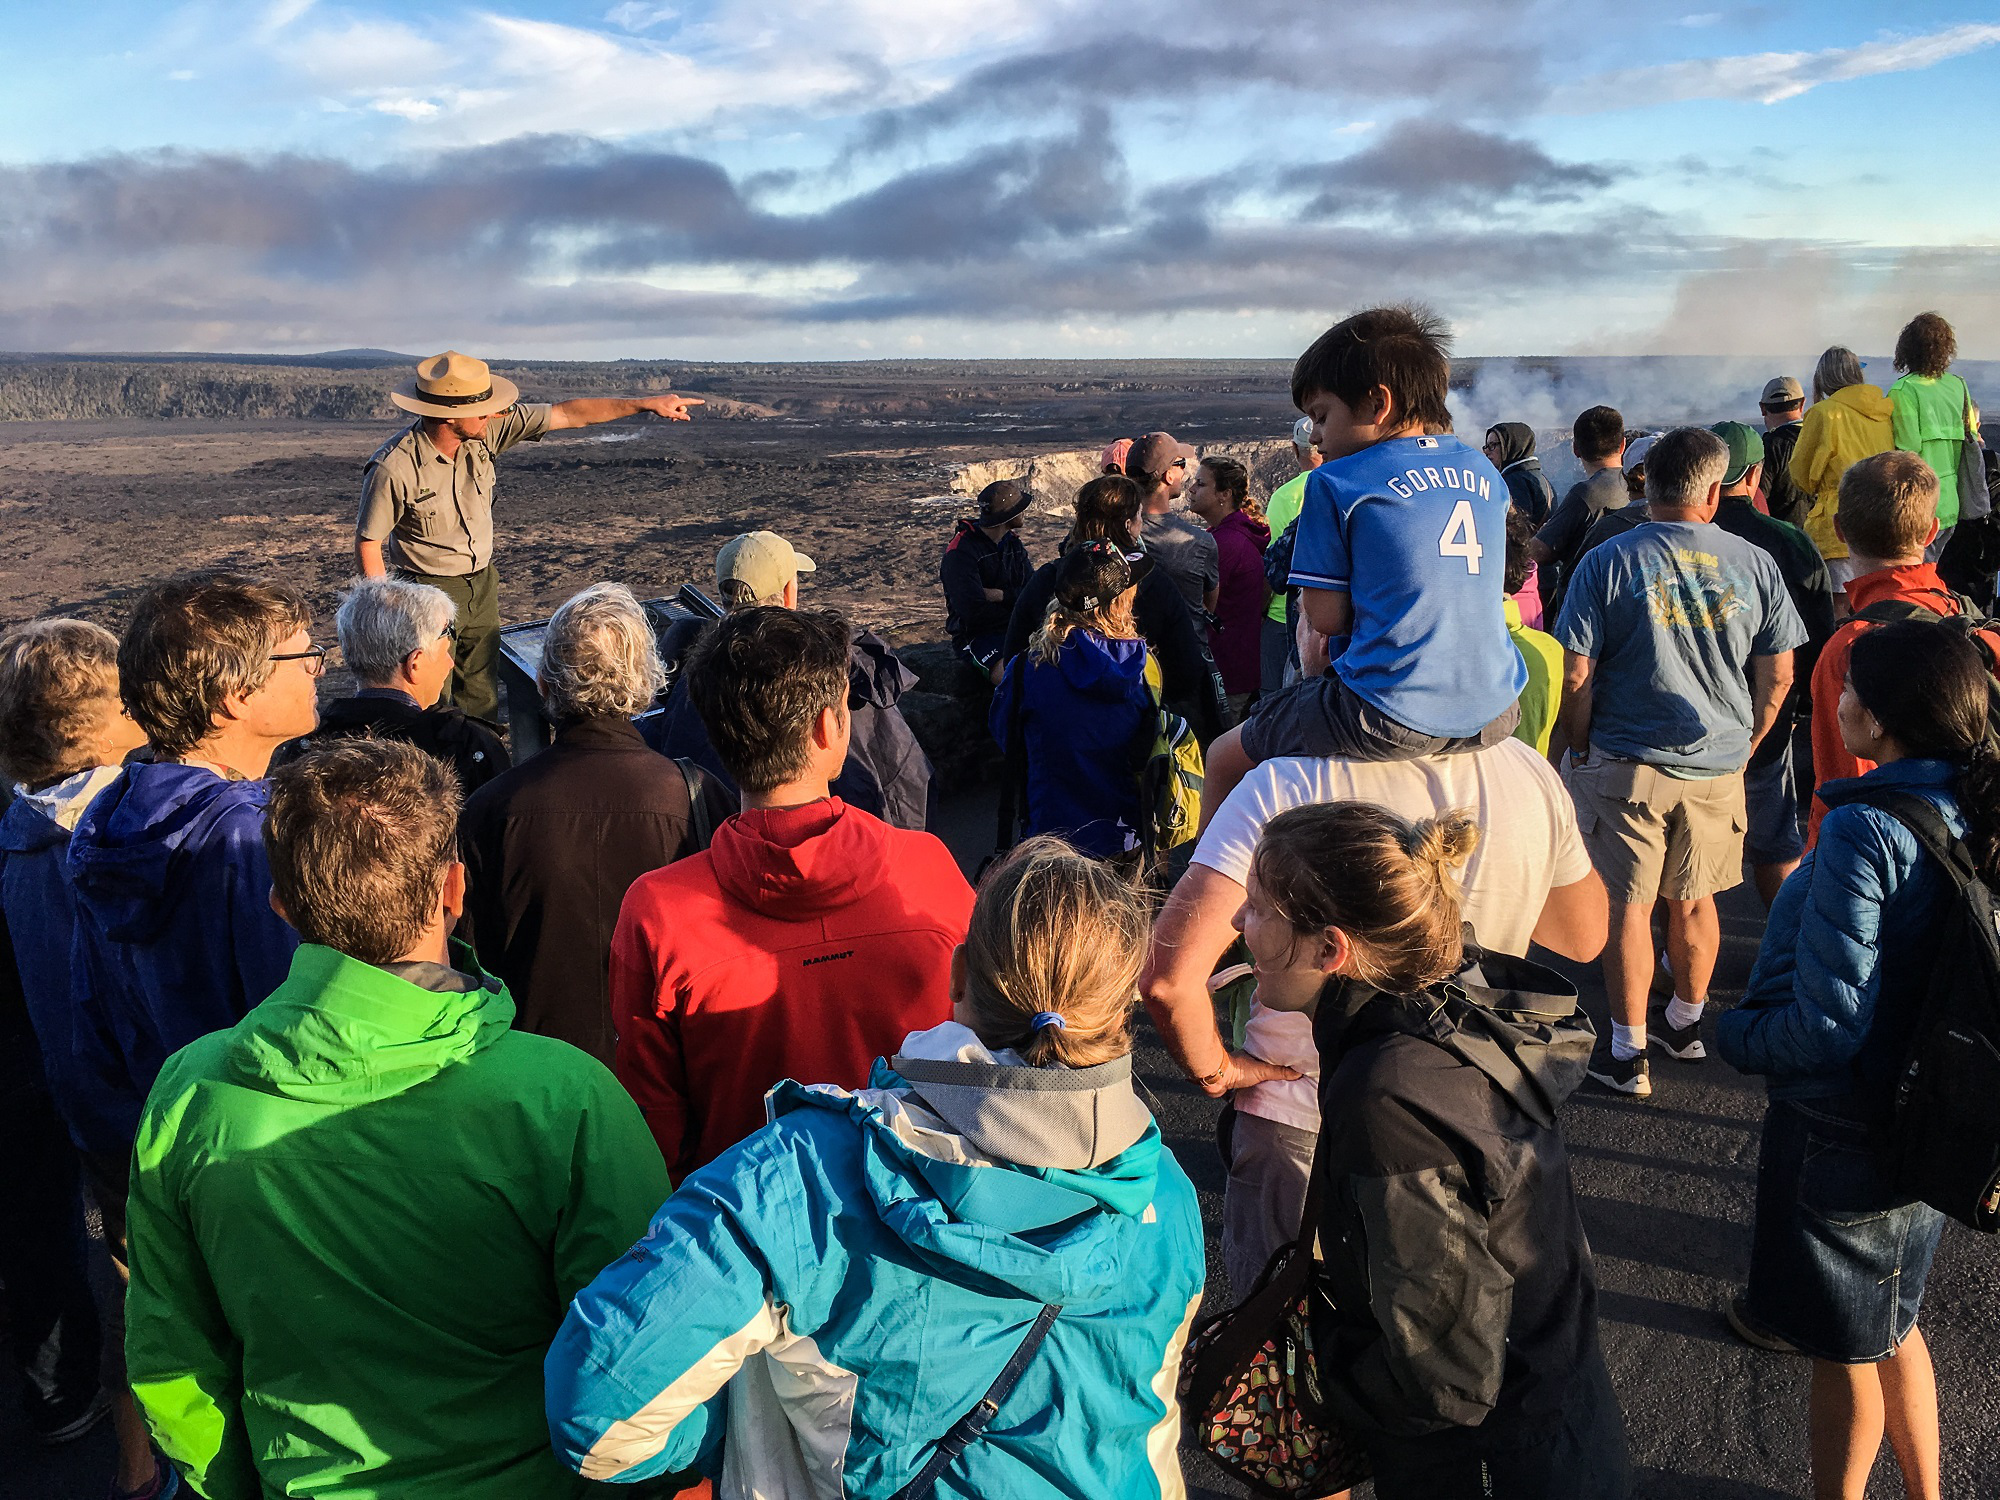 Holiday Surge At Hawaii Volcanoes National Park